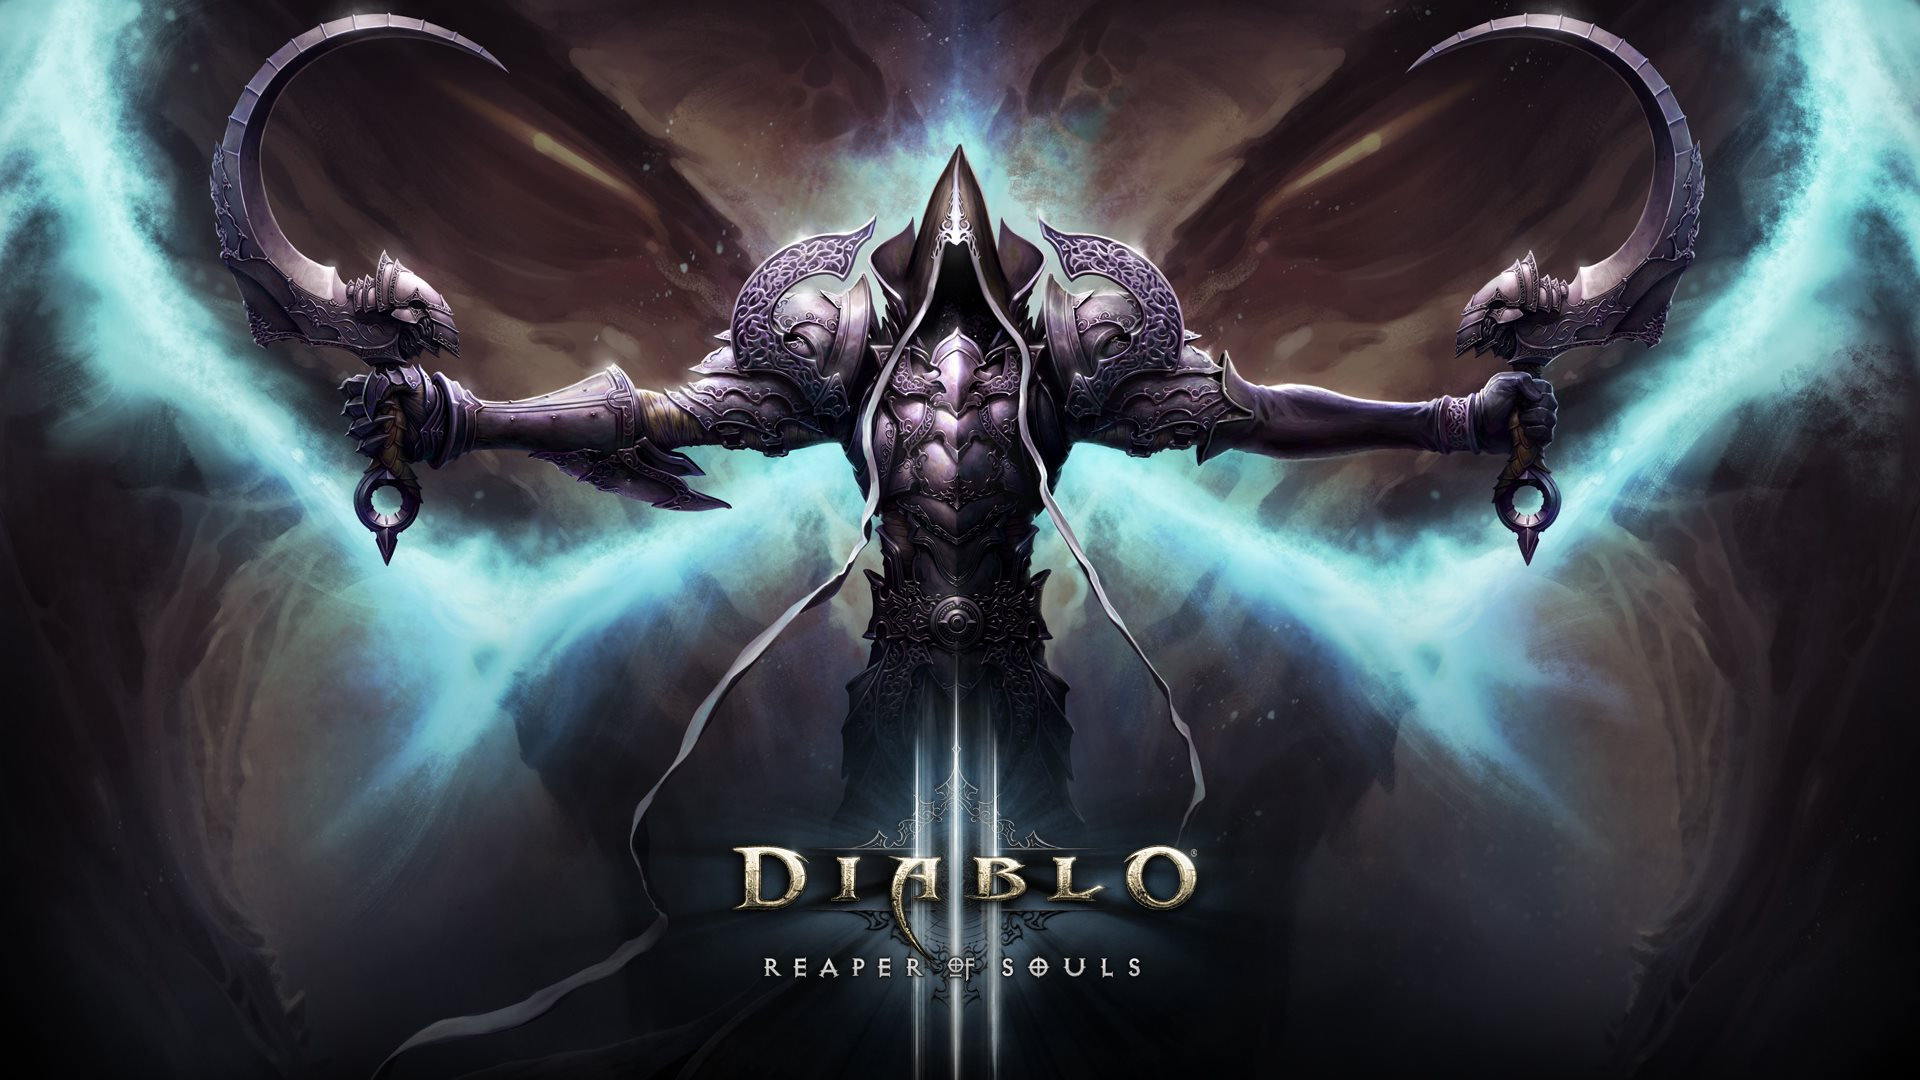 Diablo-Reaper-of-Souls-2_HD